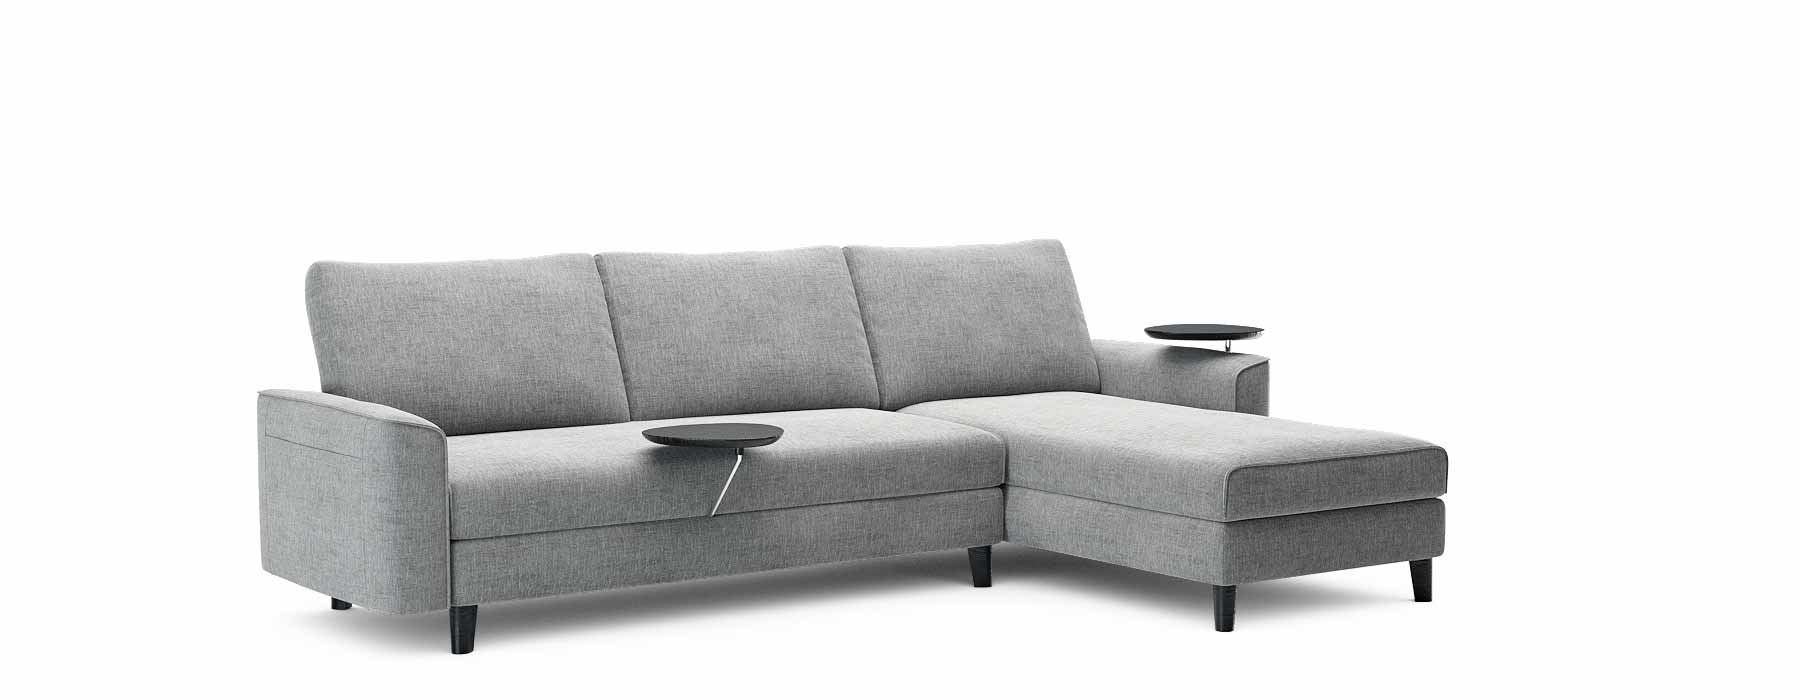 sofa express isle of man wall bed living divani prezzo delta iii flexible modular lounge couch king